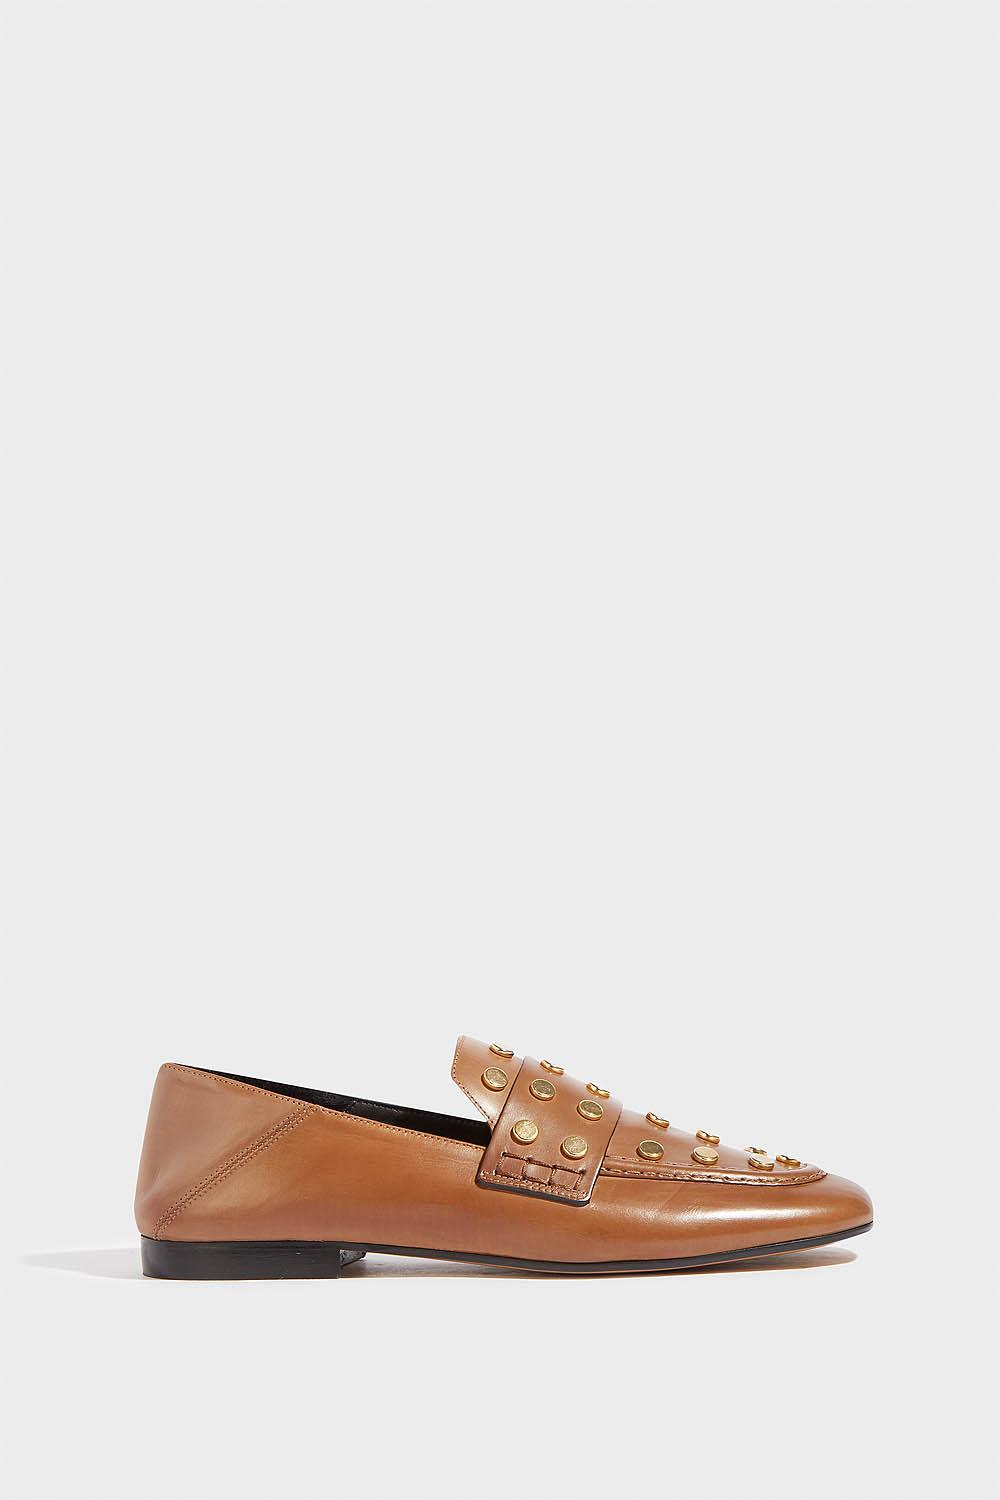 6fc819f0bf0 Isabel Marant. Women s Feenie Studded Leather Loafers